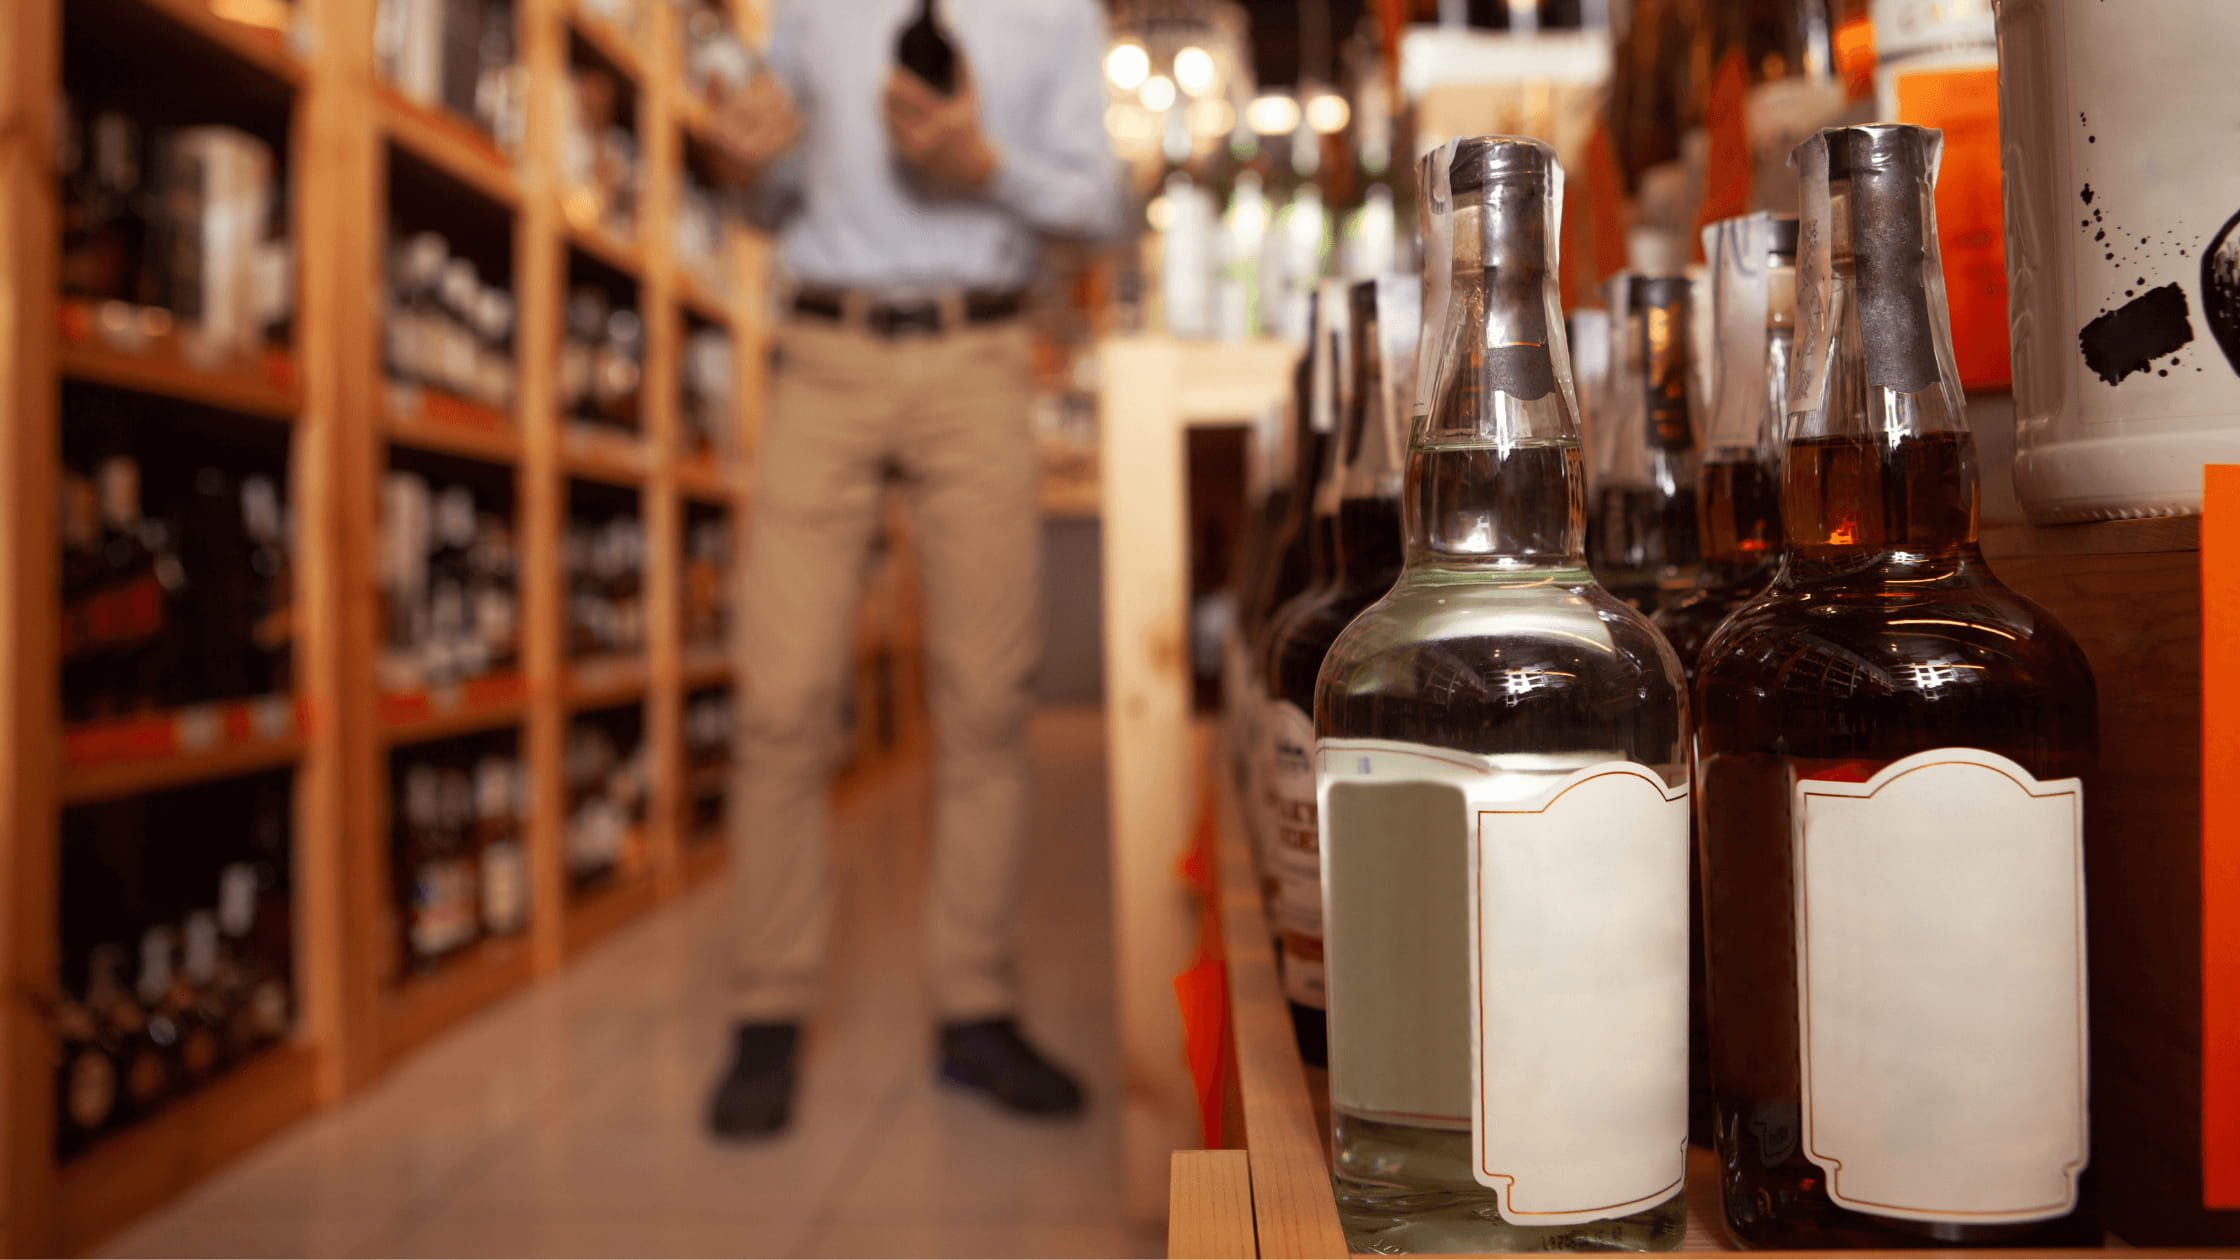 A photo with shelves that include liquor bottles.